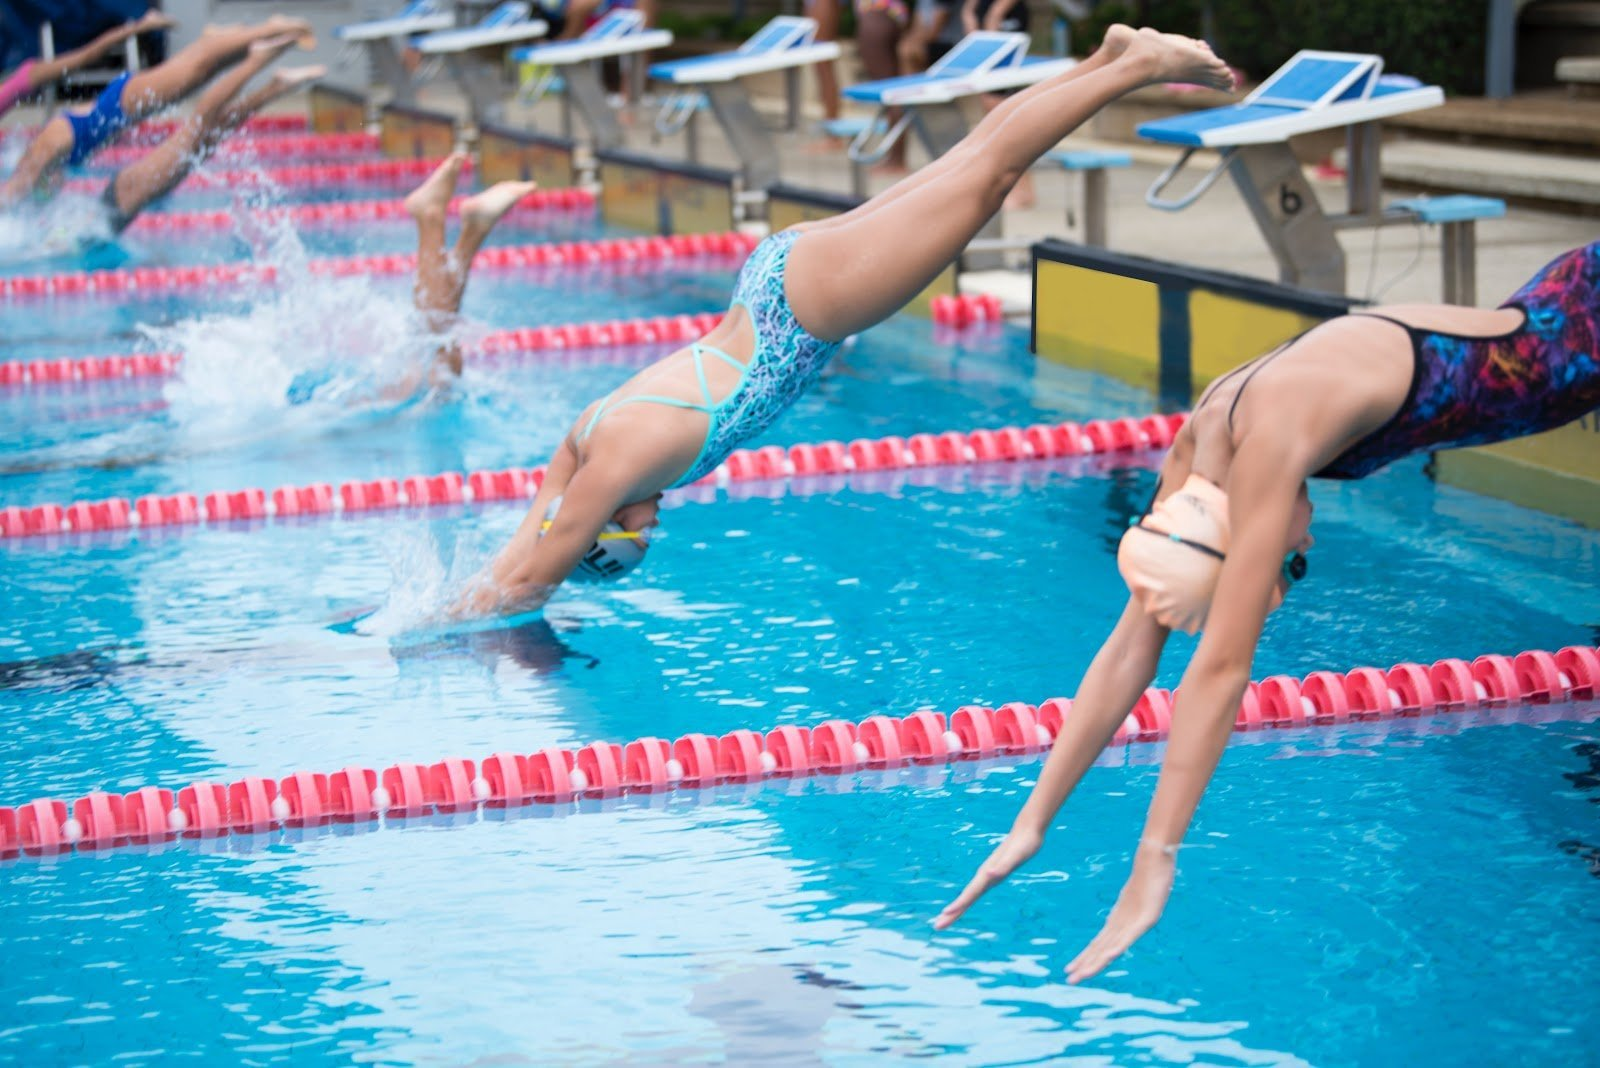 Motion photography of swimmers diving into a pool by Arisa Chattasa